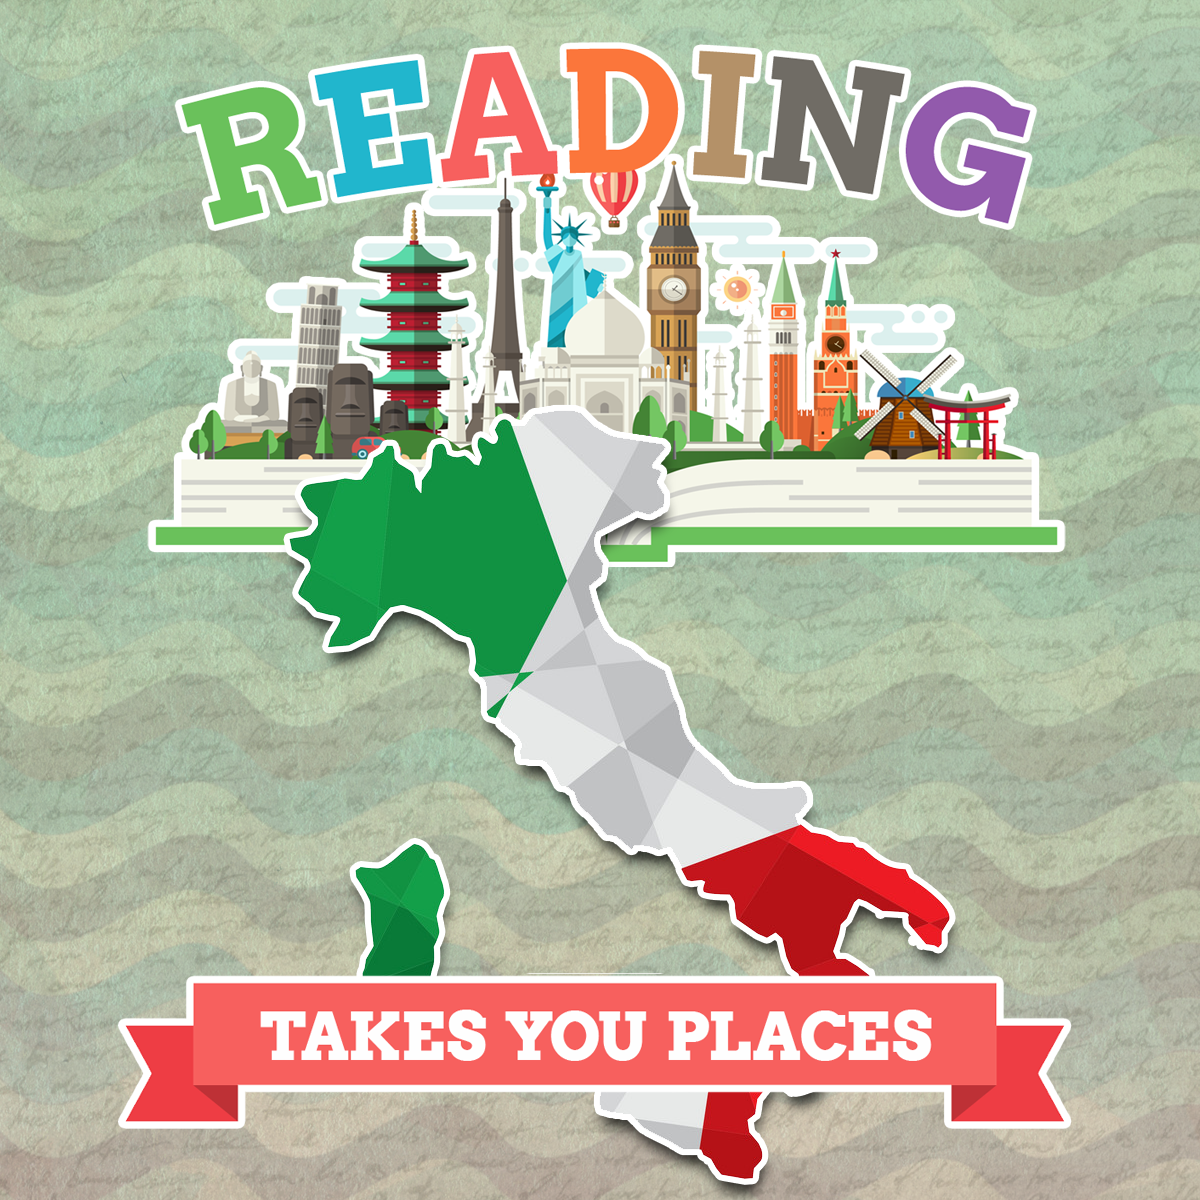 This week we are visiting Italy for summer reading!